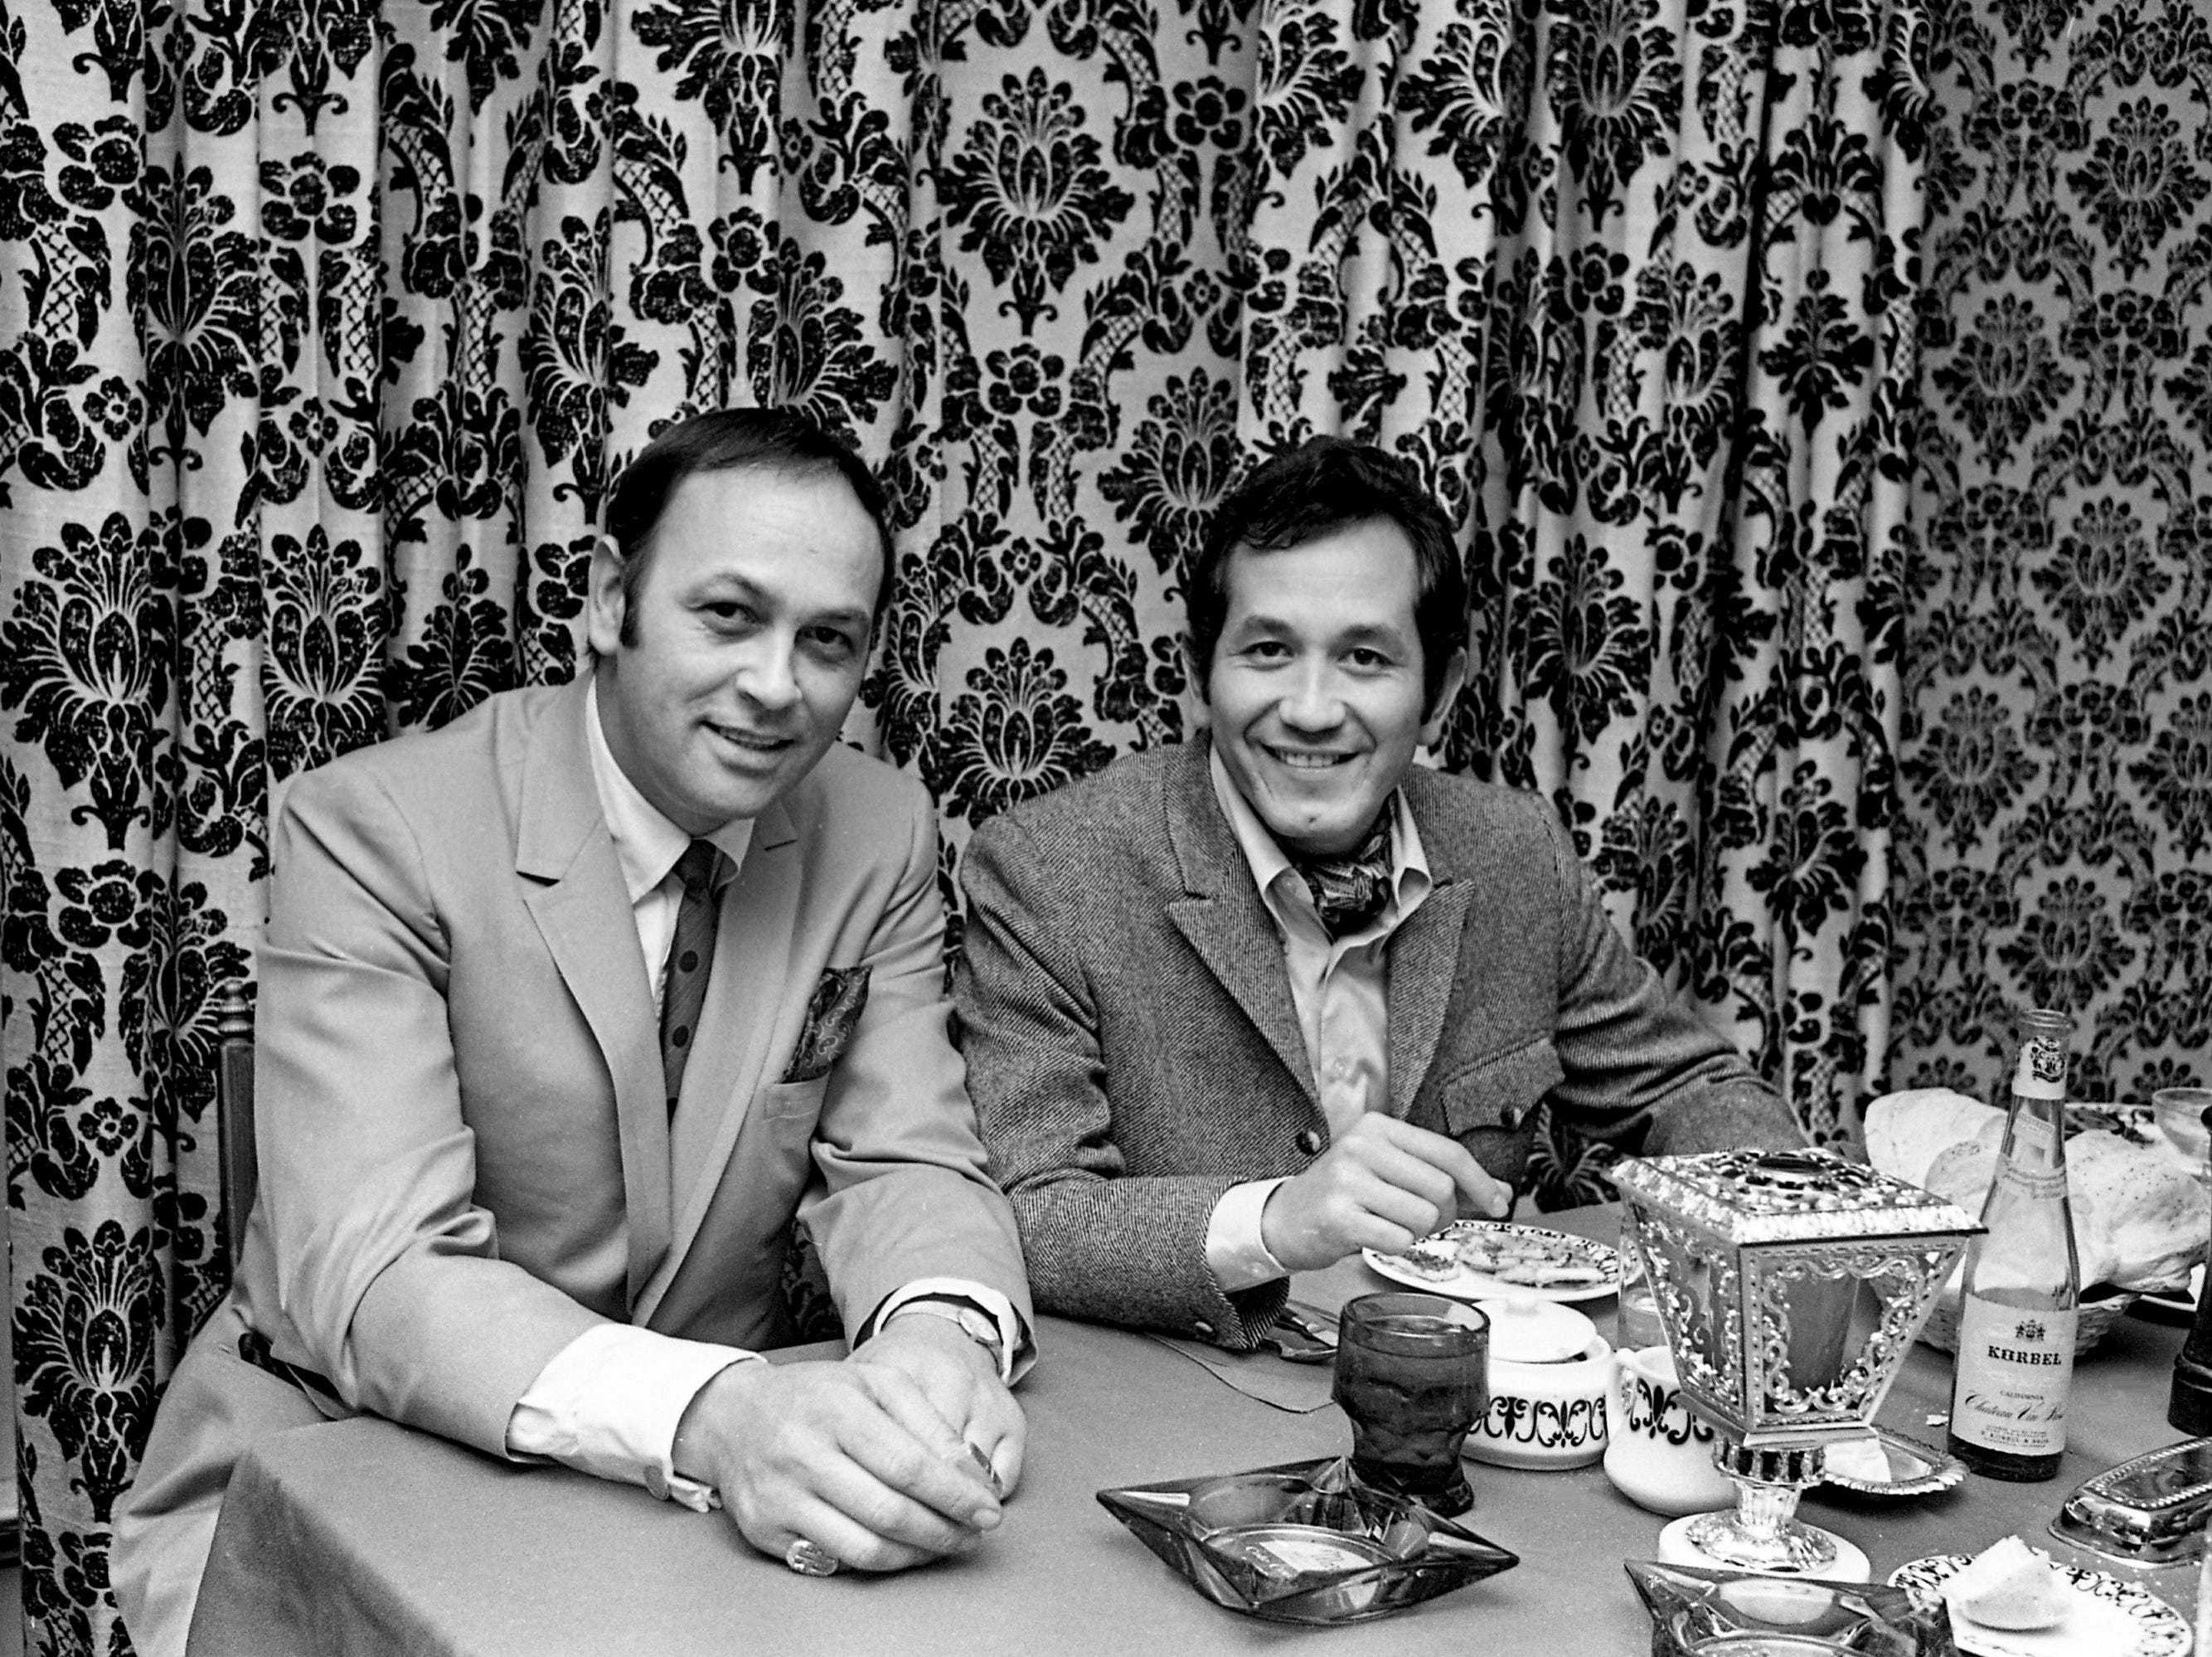 Popular singer Trini Lopez, right, visits with Mario Ferrari at Mario's Restaurant March 27, 1968. Lopez, whose variety of calypso songs made him famous, is in Nashville to record a country music album.